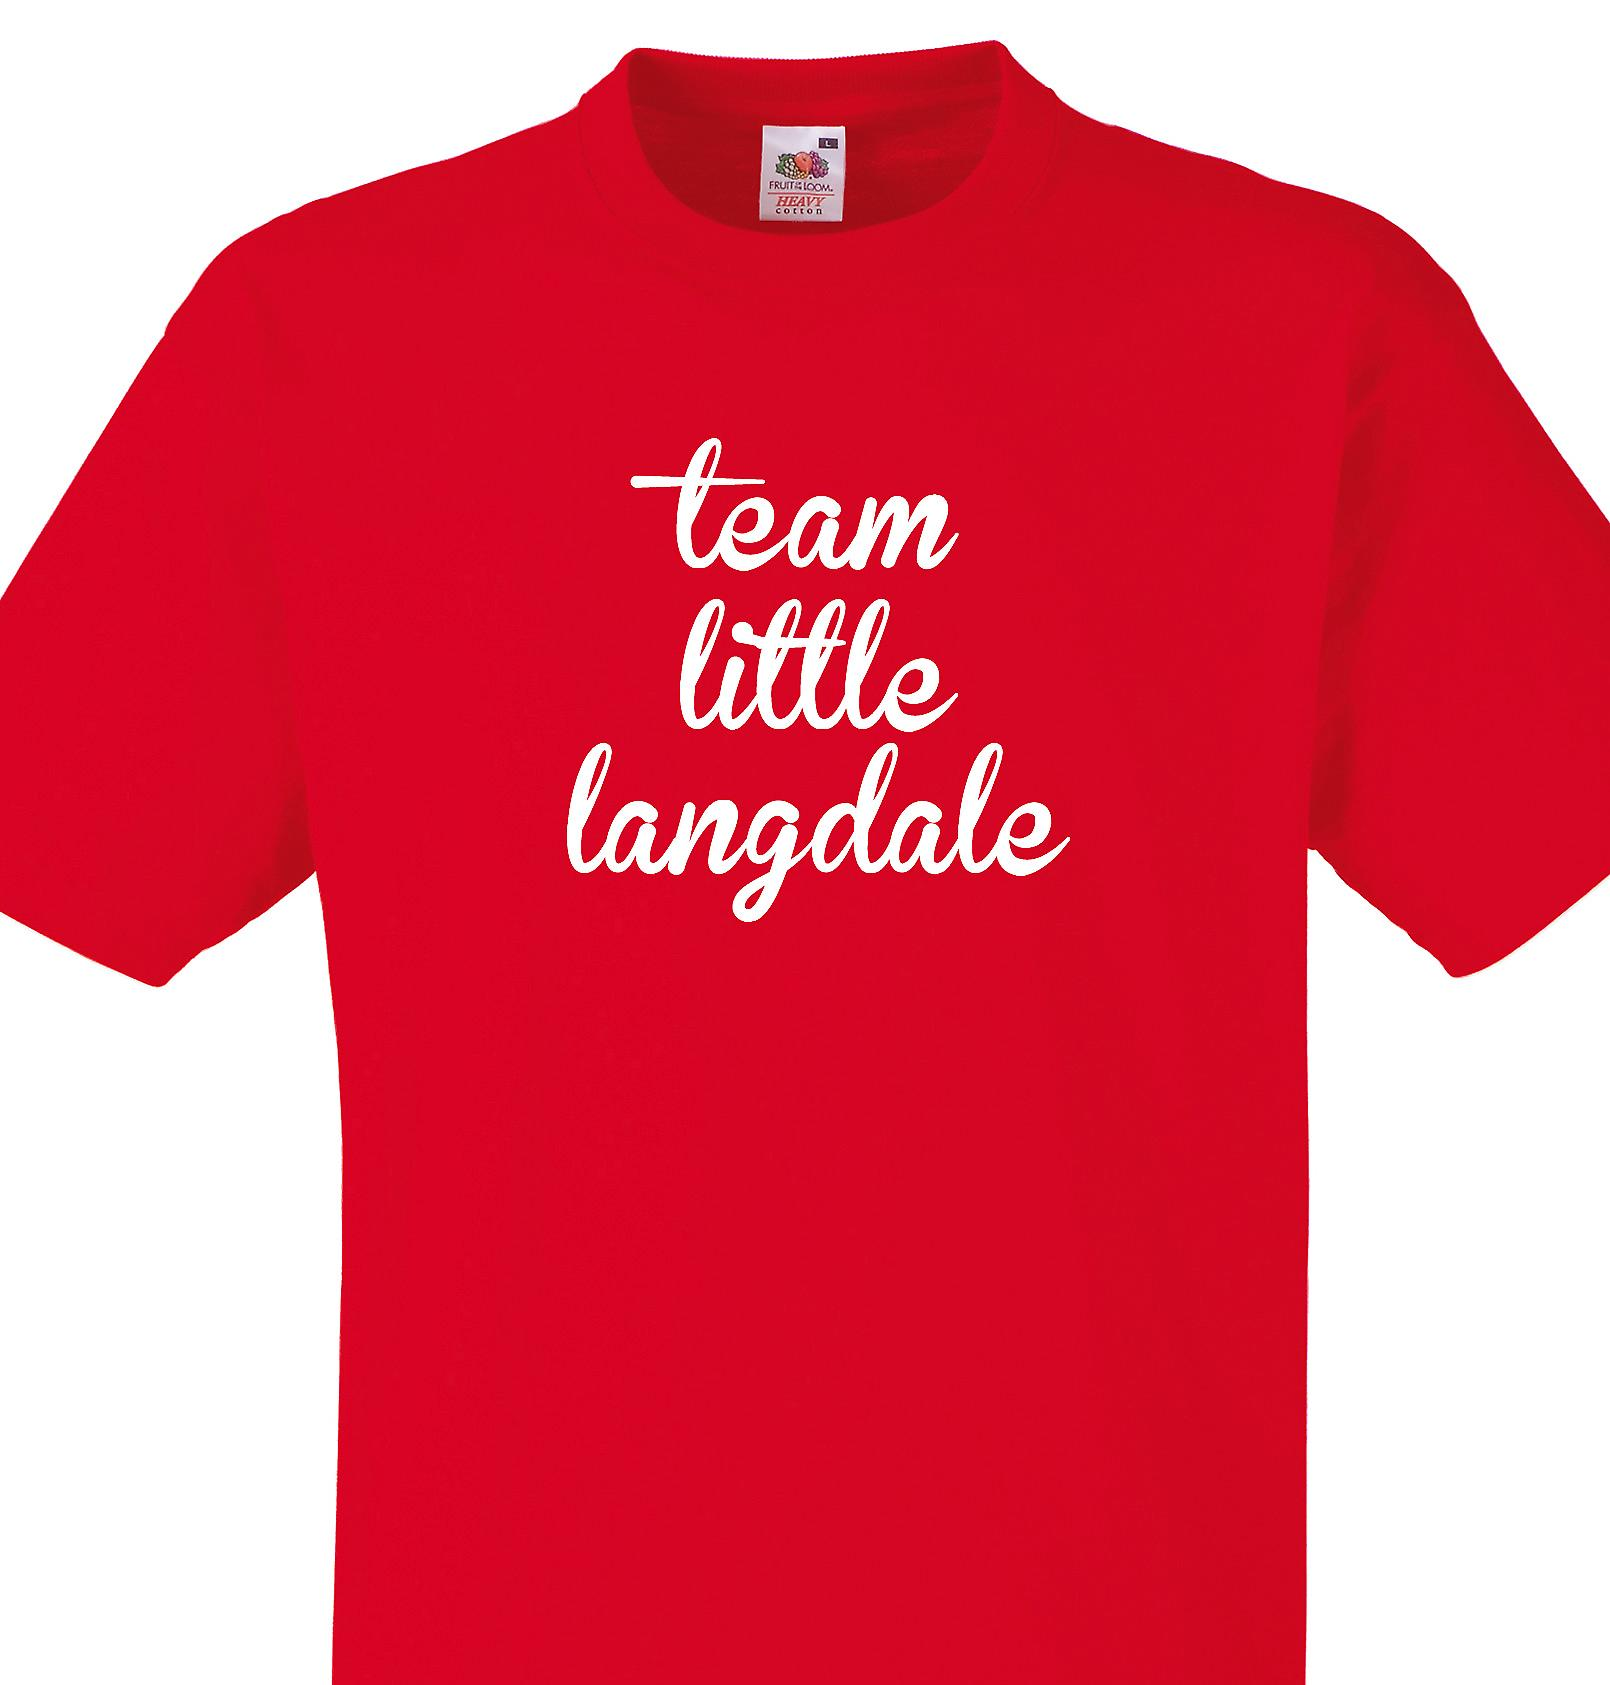 Team Little langdale Red T shirt